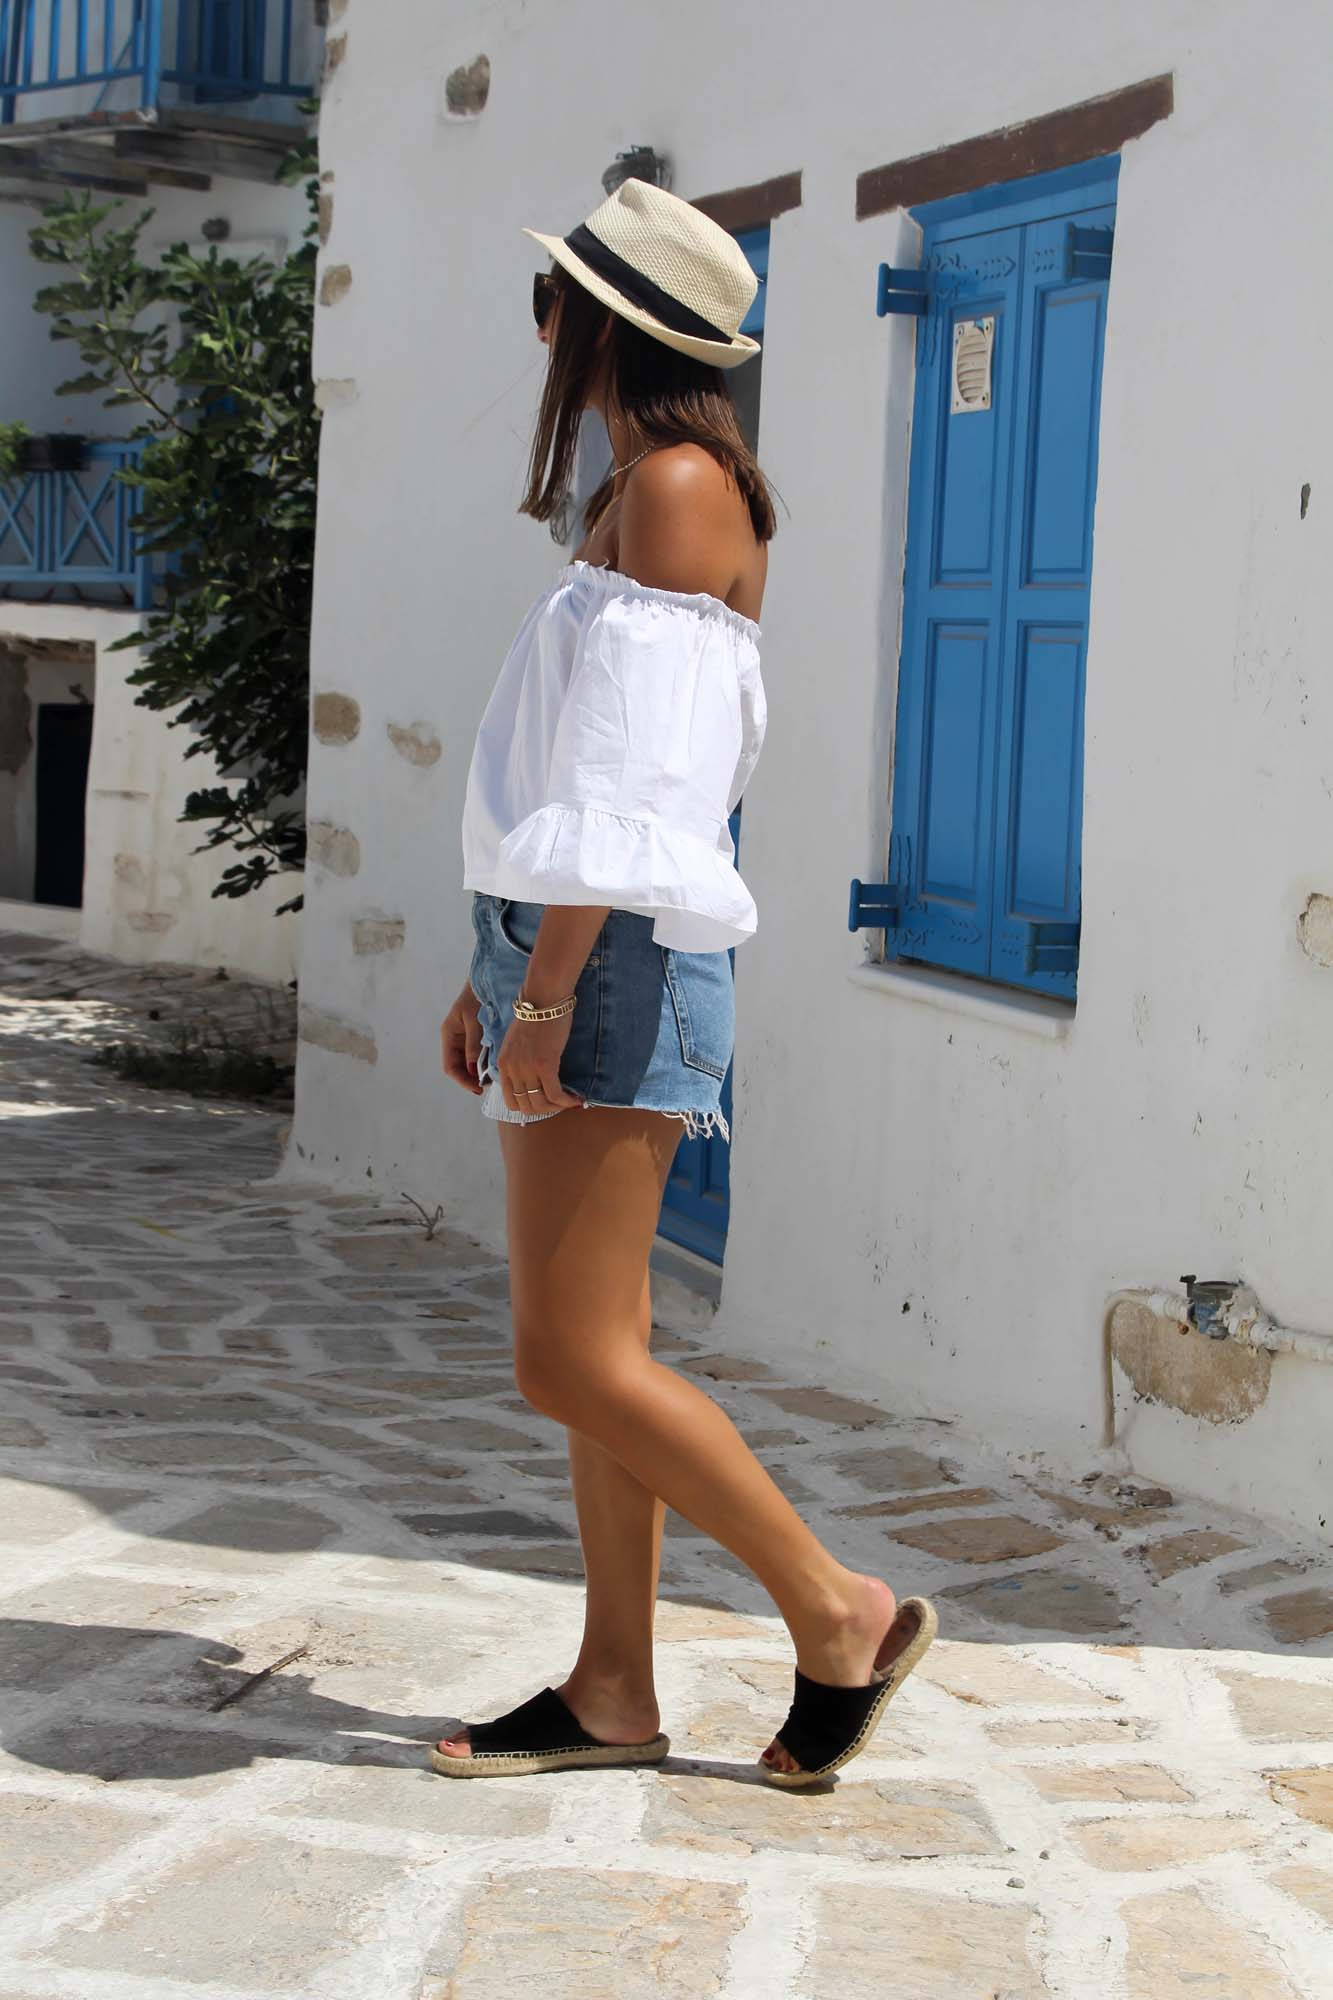 look-greece-paros-linstantflo-12-sur-16